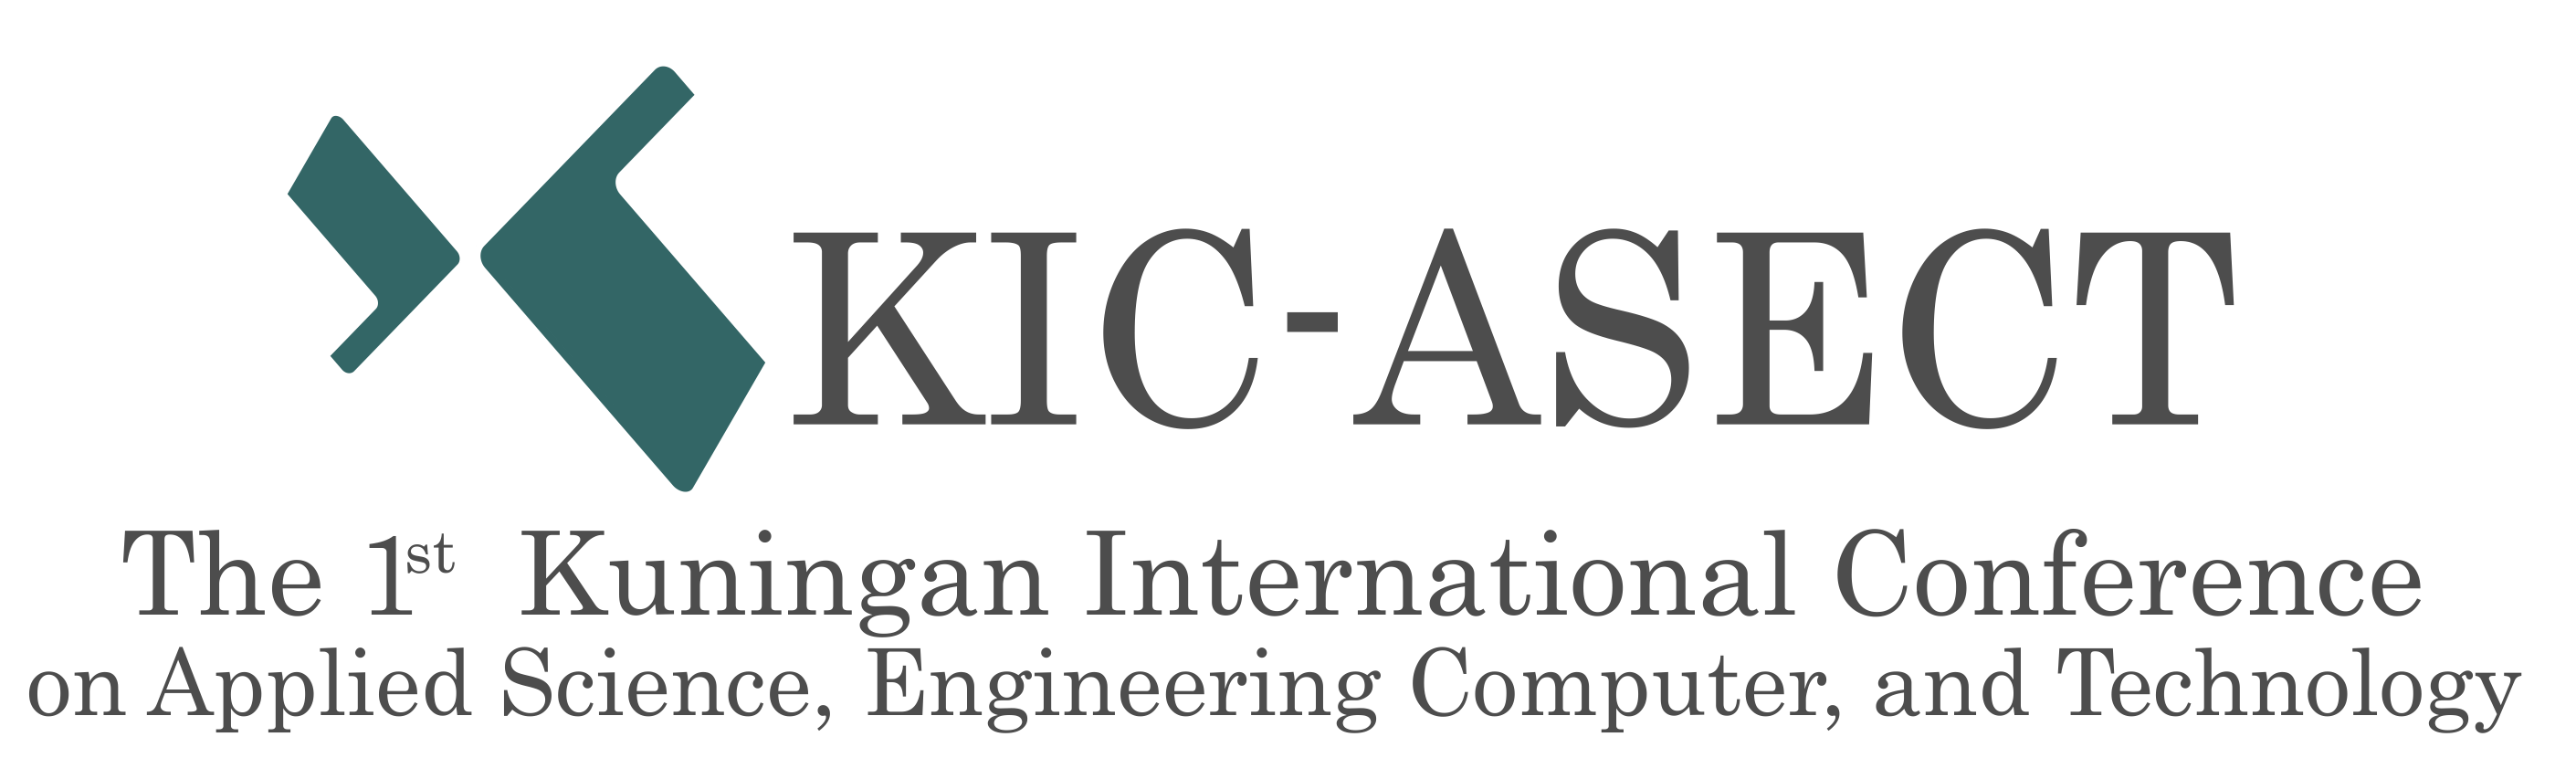 KIC-ASECT - 1st Kuningan International Conference on Applied Science, Engineering, Computer, and Technology